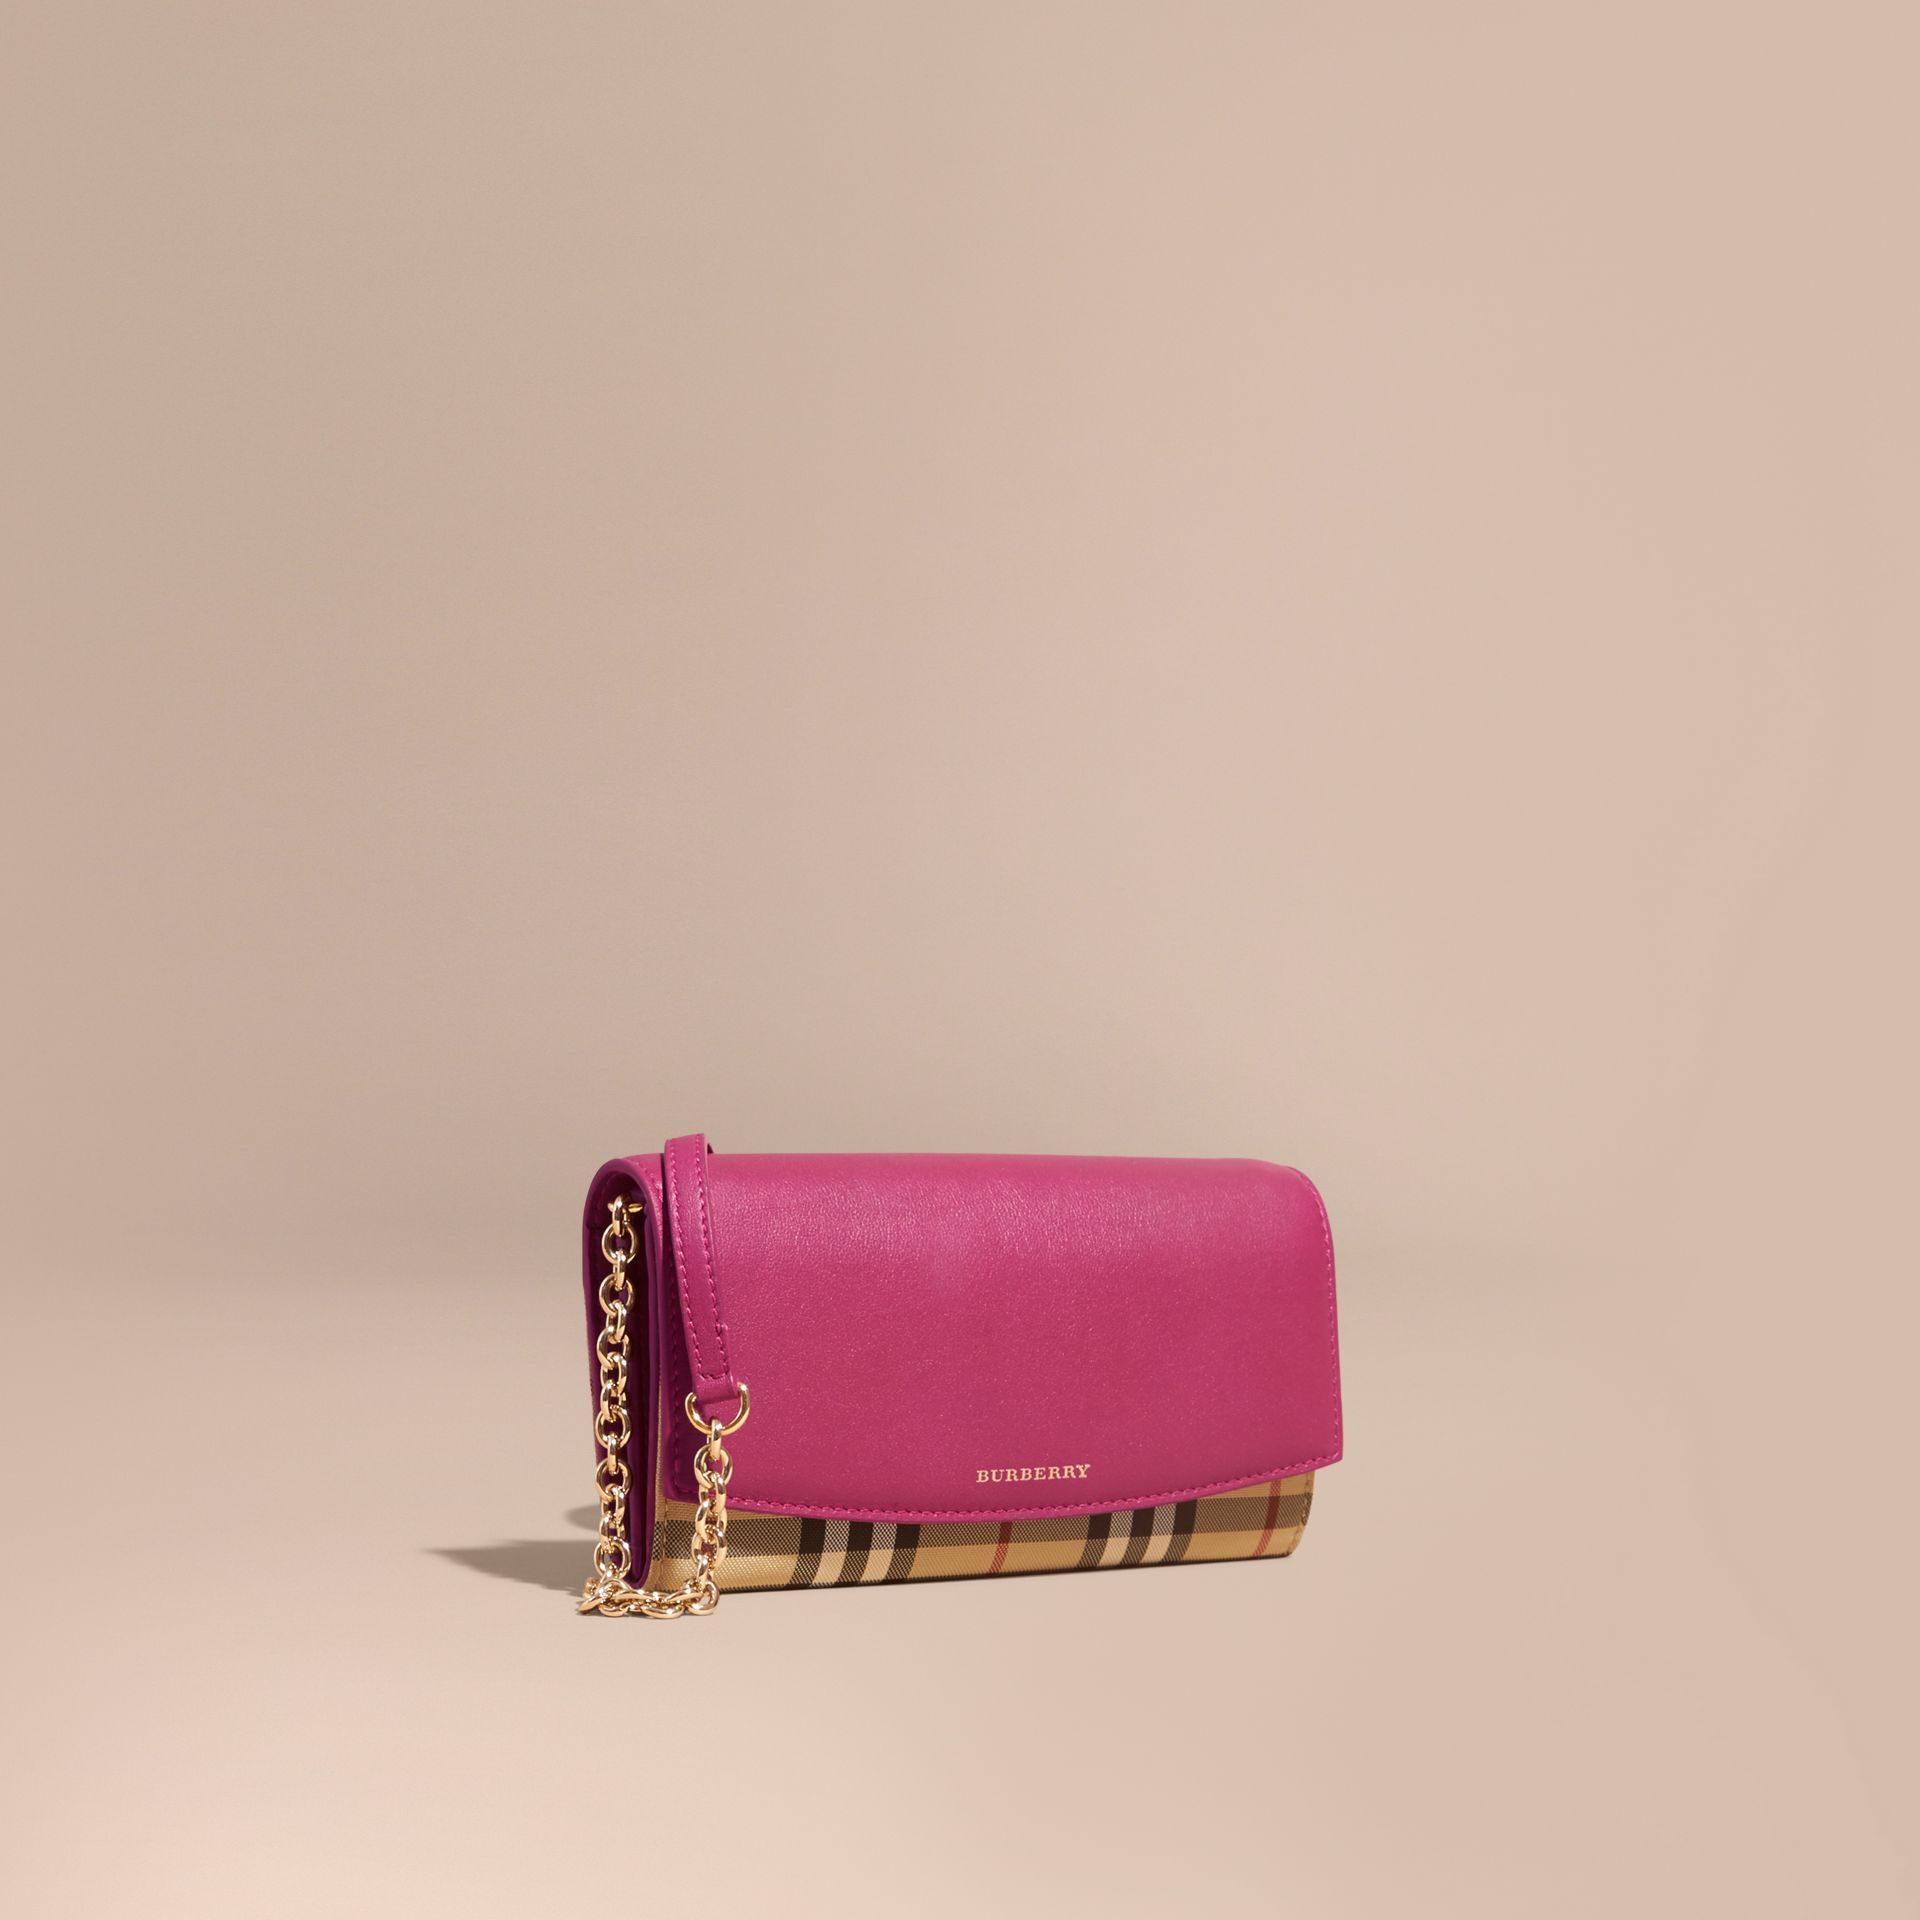 Brilliant fuchsia Horseferry Check and Leather Wallet with Chain Brilliant Fuchsia - gallery image 1